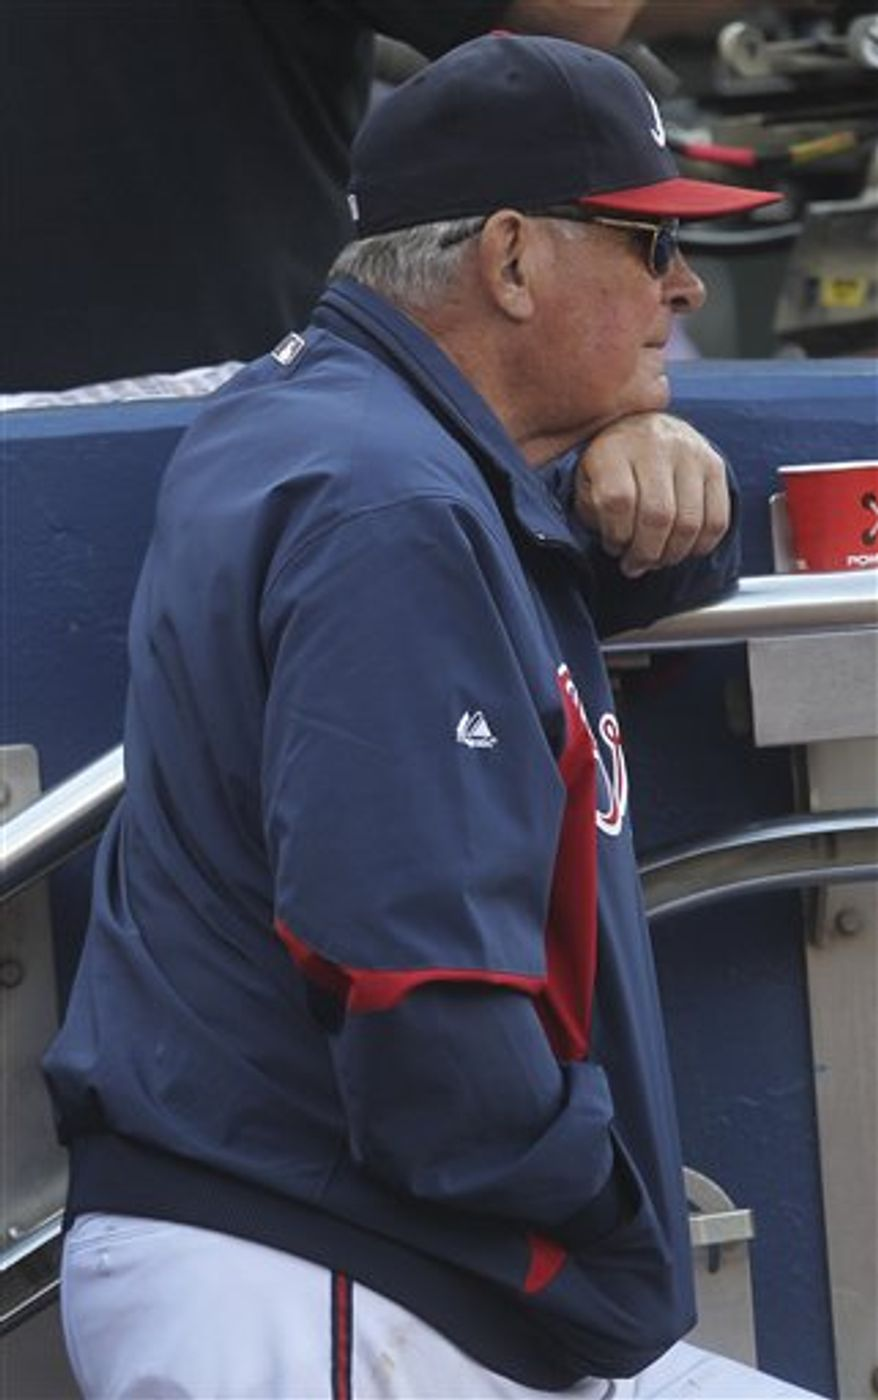 Atlanta Braves manager Bobby Cox jogs back to the dugout after making a pitching change during a baseball game against the Florida Marlins, Wednesday, Sept. 29, 2010 in Atlanta. Cox plans to retire after the season. (AP Photo/John Bazemore)